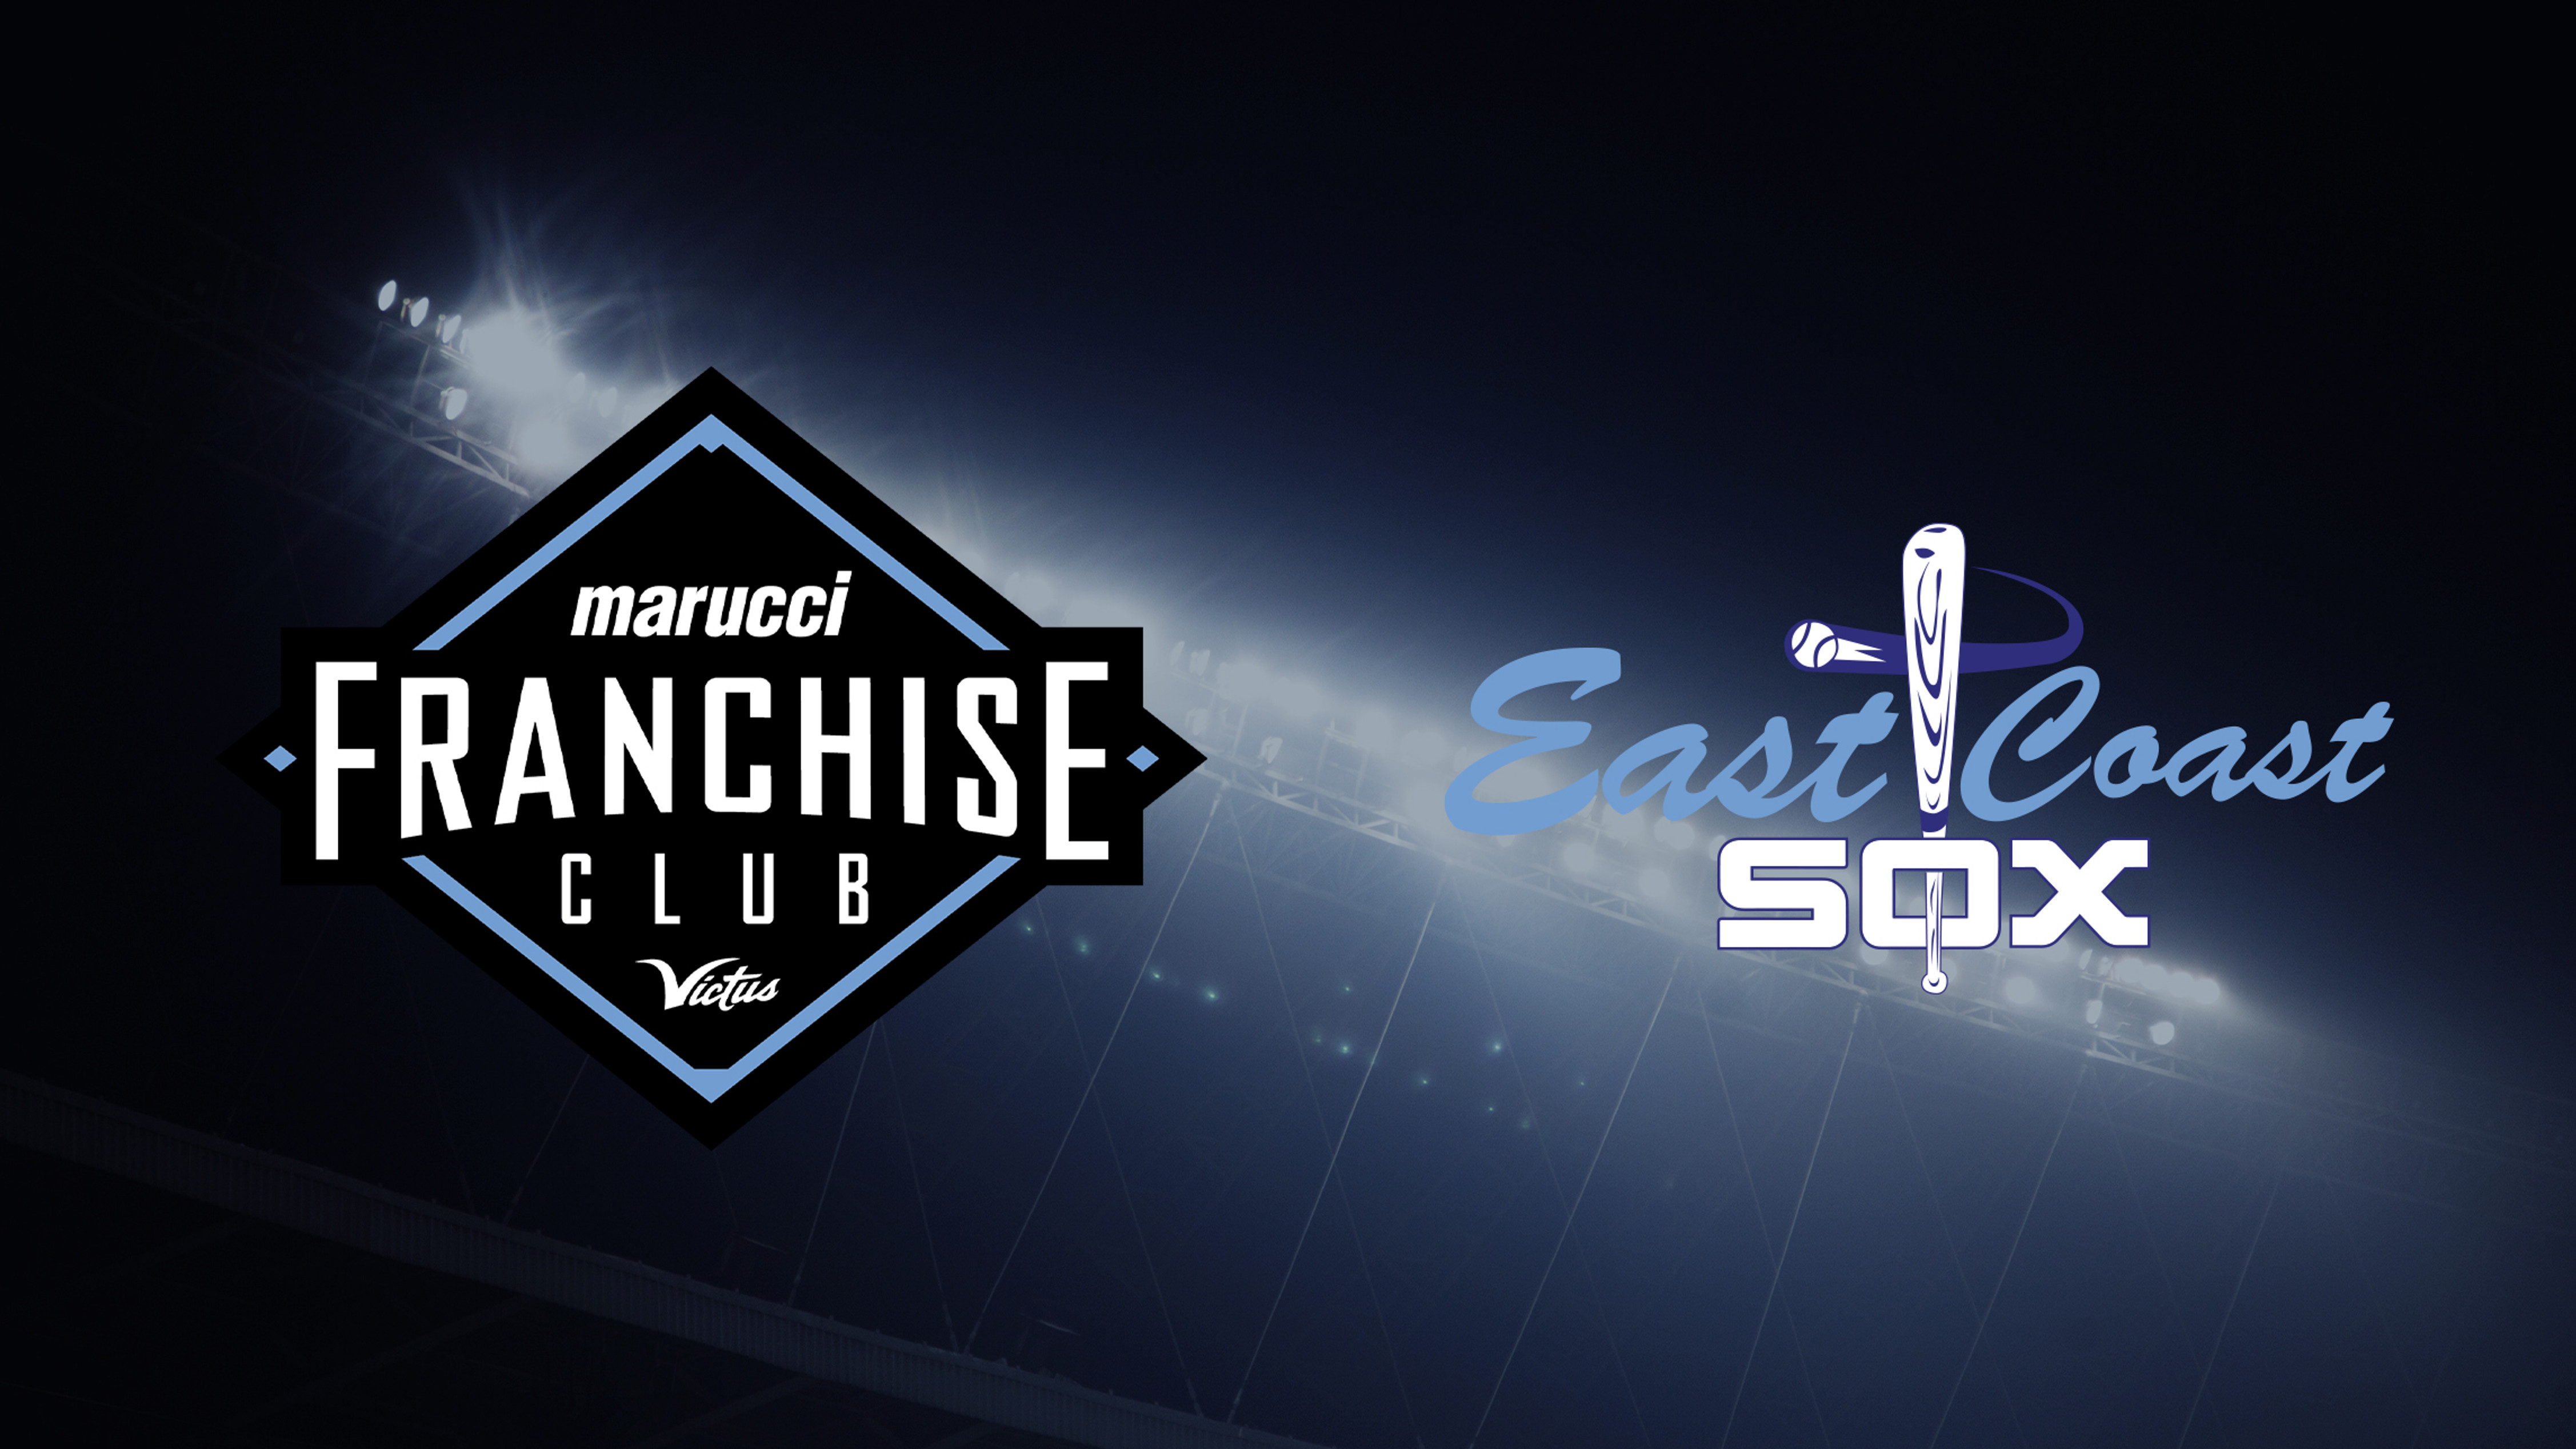 The Marucci Franchise Club Adds The East Coast Sox as Its Newest Member